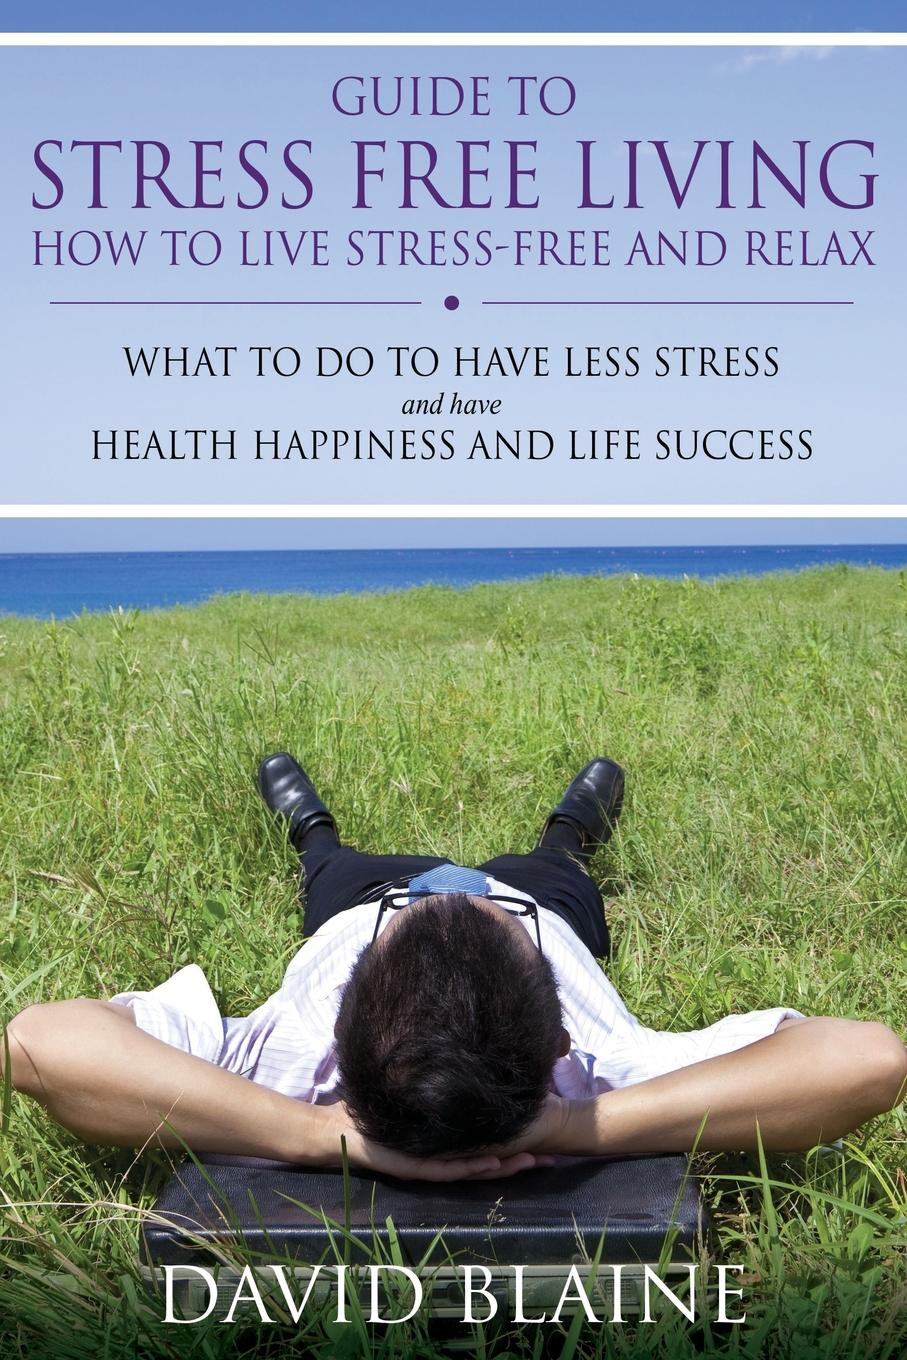 David Blaine Guide to Stress Free Living. How to Live Stress-Free and Relax frueh christopher clinician s guide to posttraumatic stress disorder